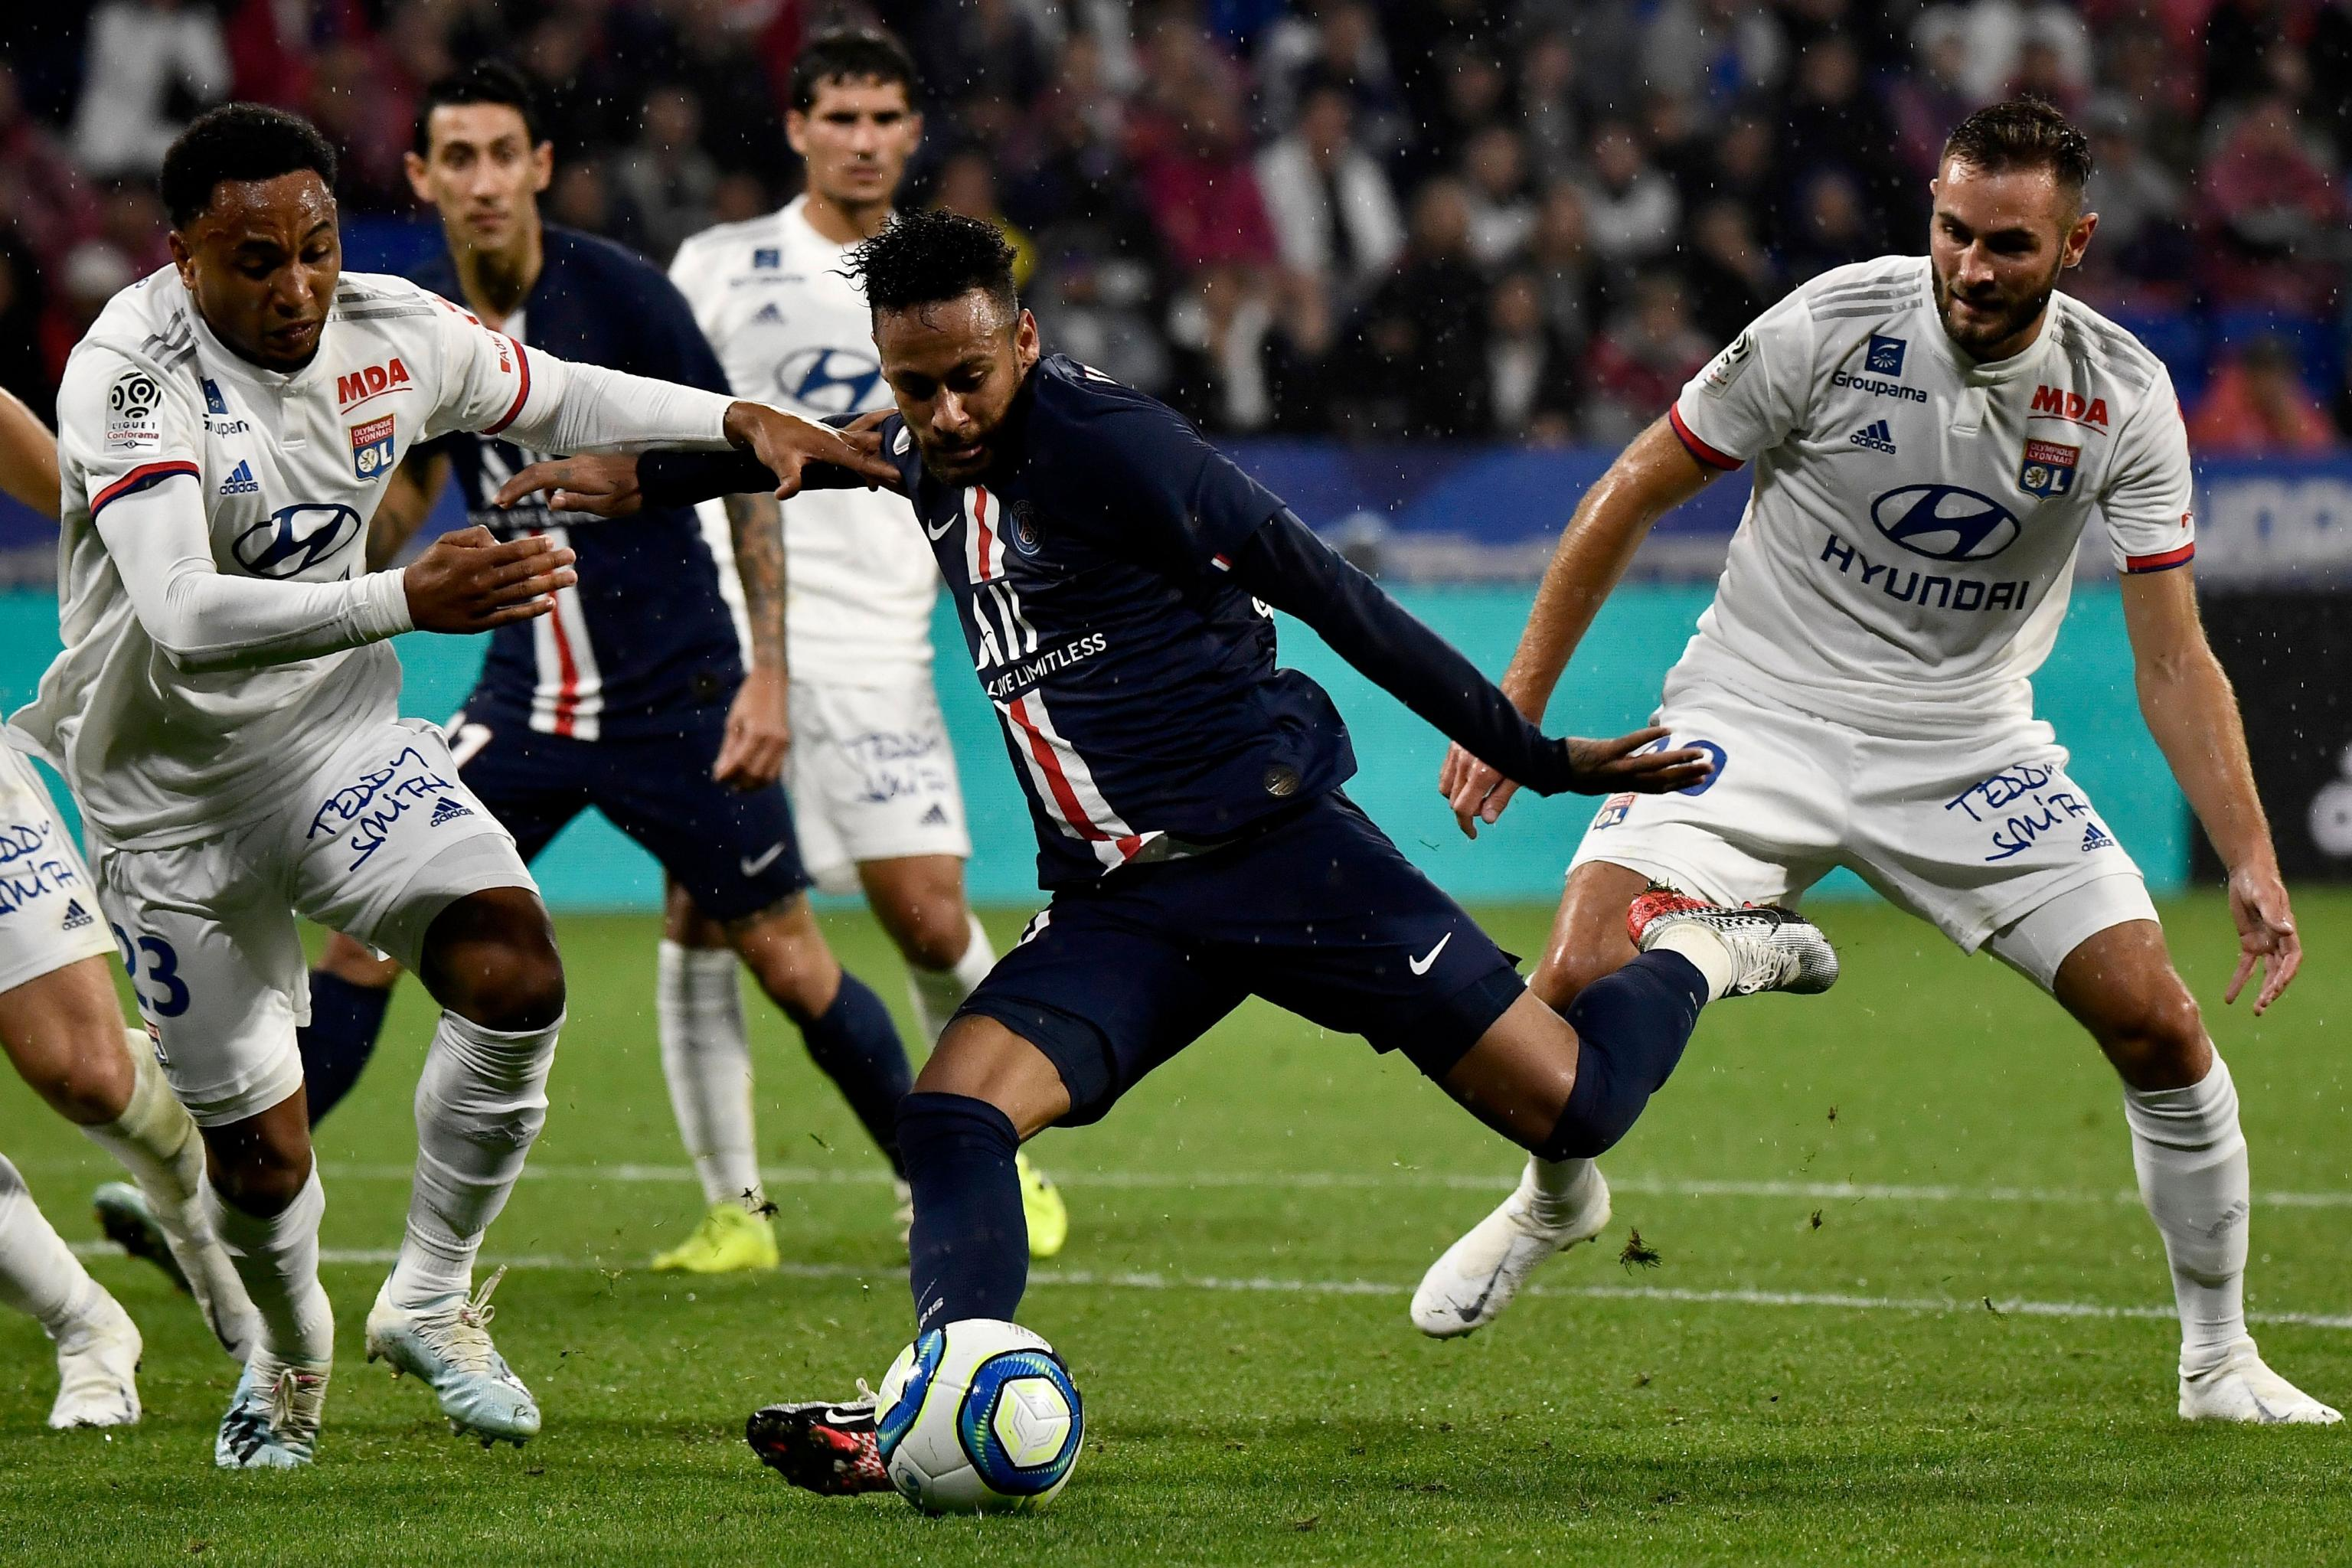 PSG vs Lyon LIVE in Ligue 1: Lionel Messi under pressure after underperforming against Brugge in UCL, can PSG come back with a win? PSG vs OL live streaming, follow for live updates